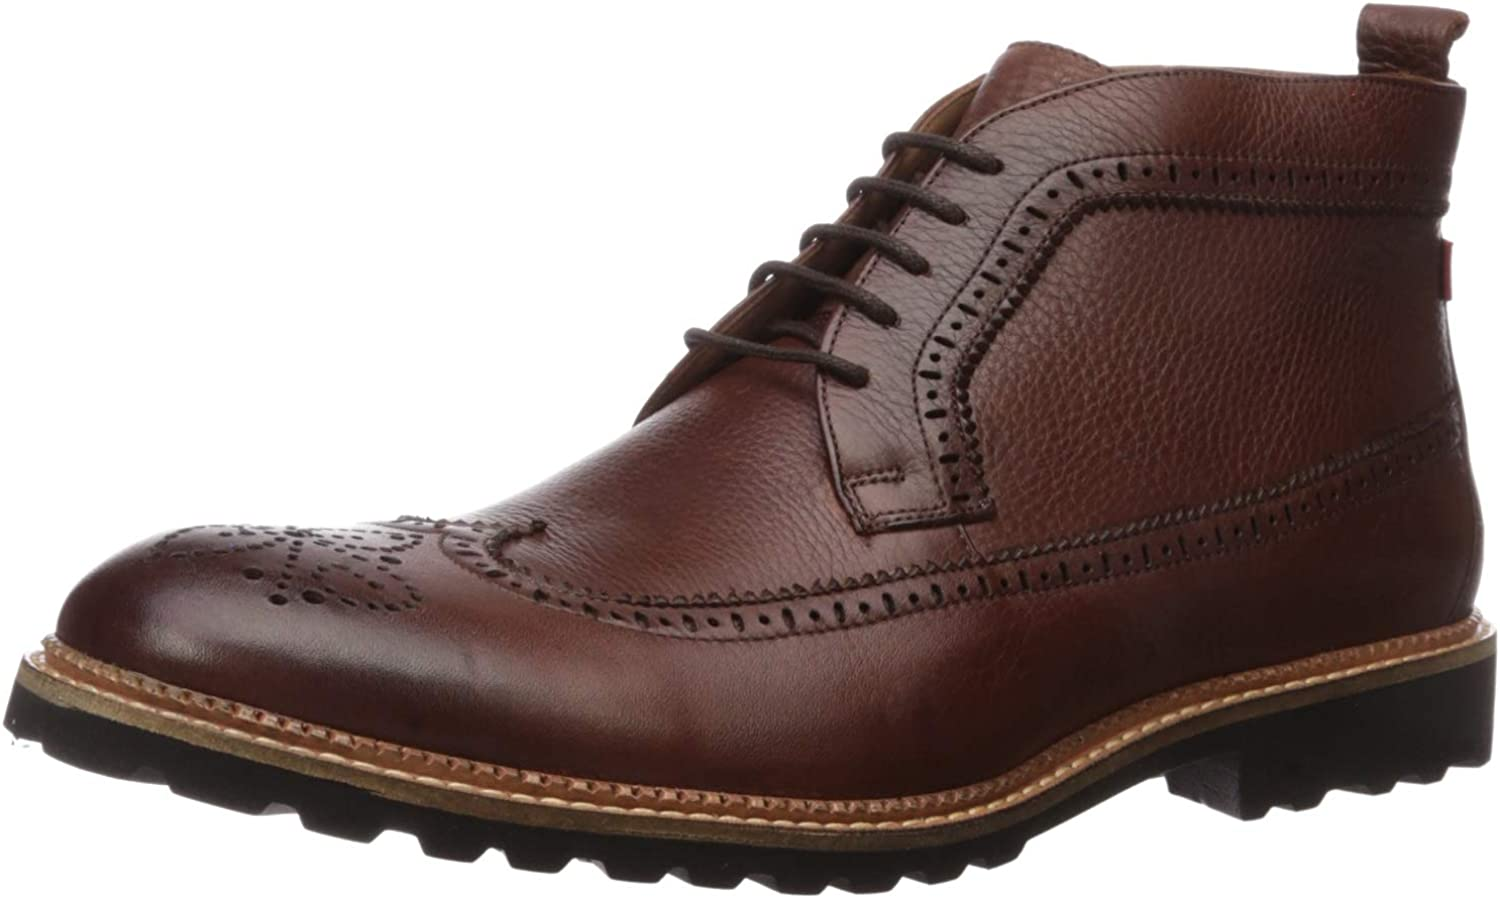 Marc Joseph New York mens Extra Genuine Ankl Lightweight Leather Popular shop is the lowest price challenge Trust